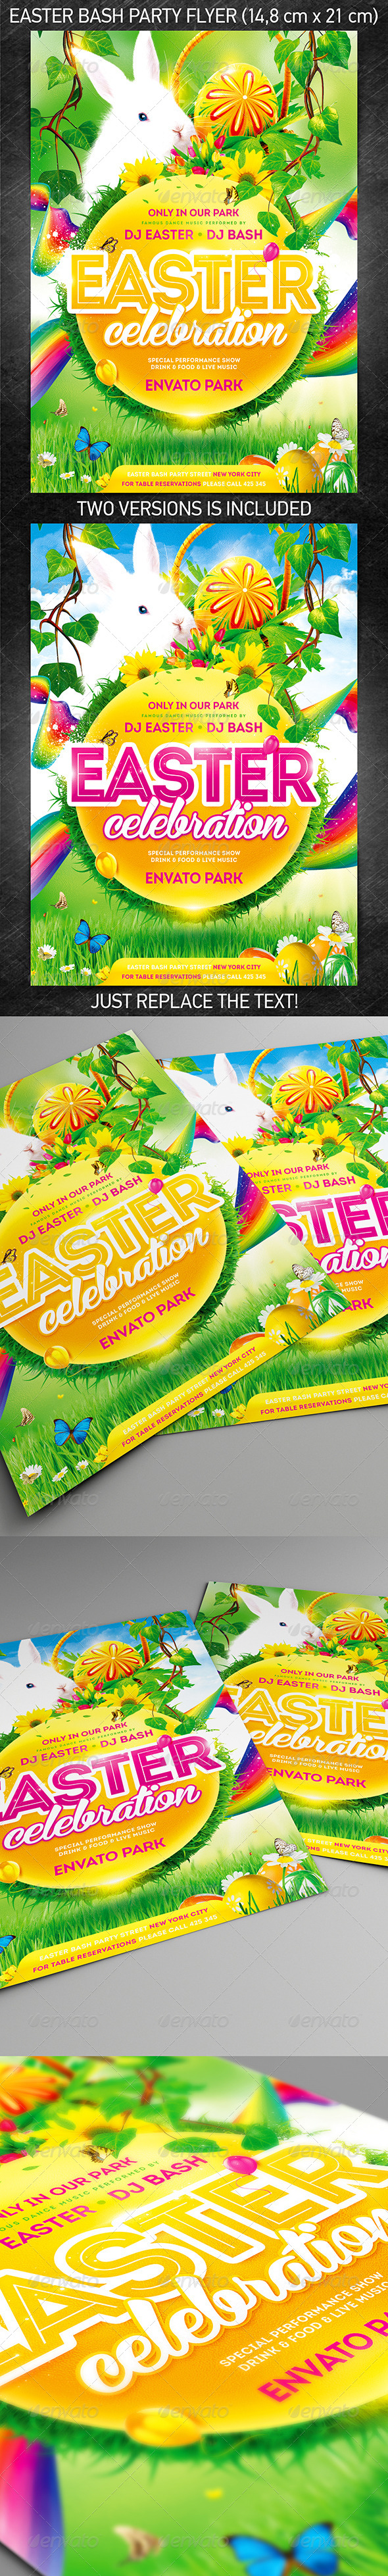 Easter bash party flyer, PSD Template